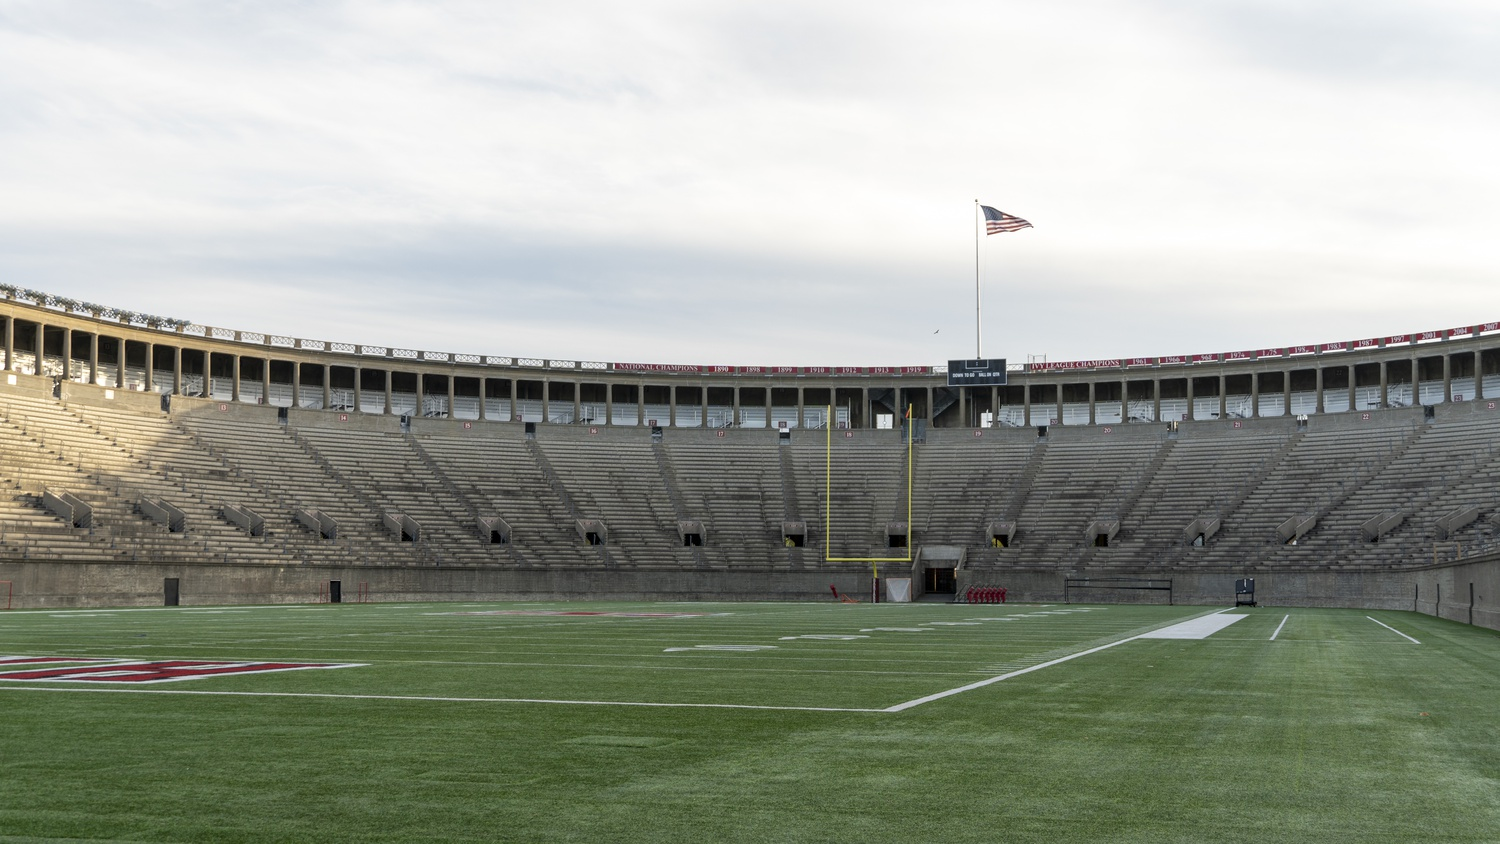 In a year without any intercollegiate competition, Harvard athletes and coaches have still found inventive ways to adapt and excel.